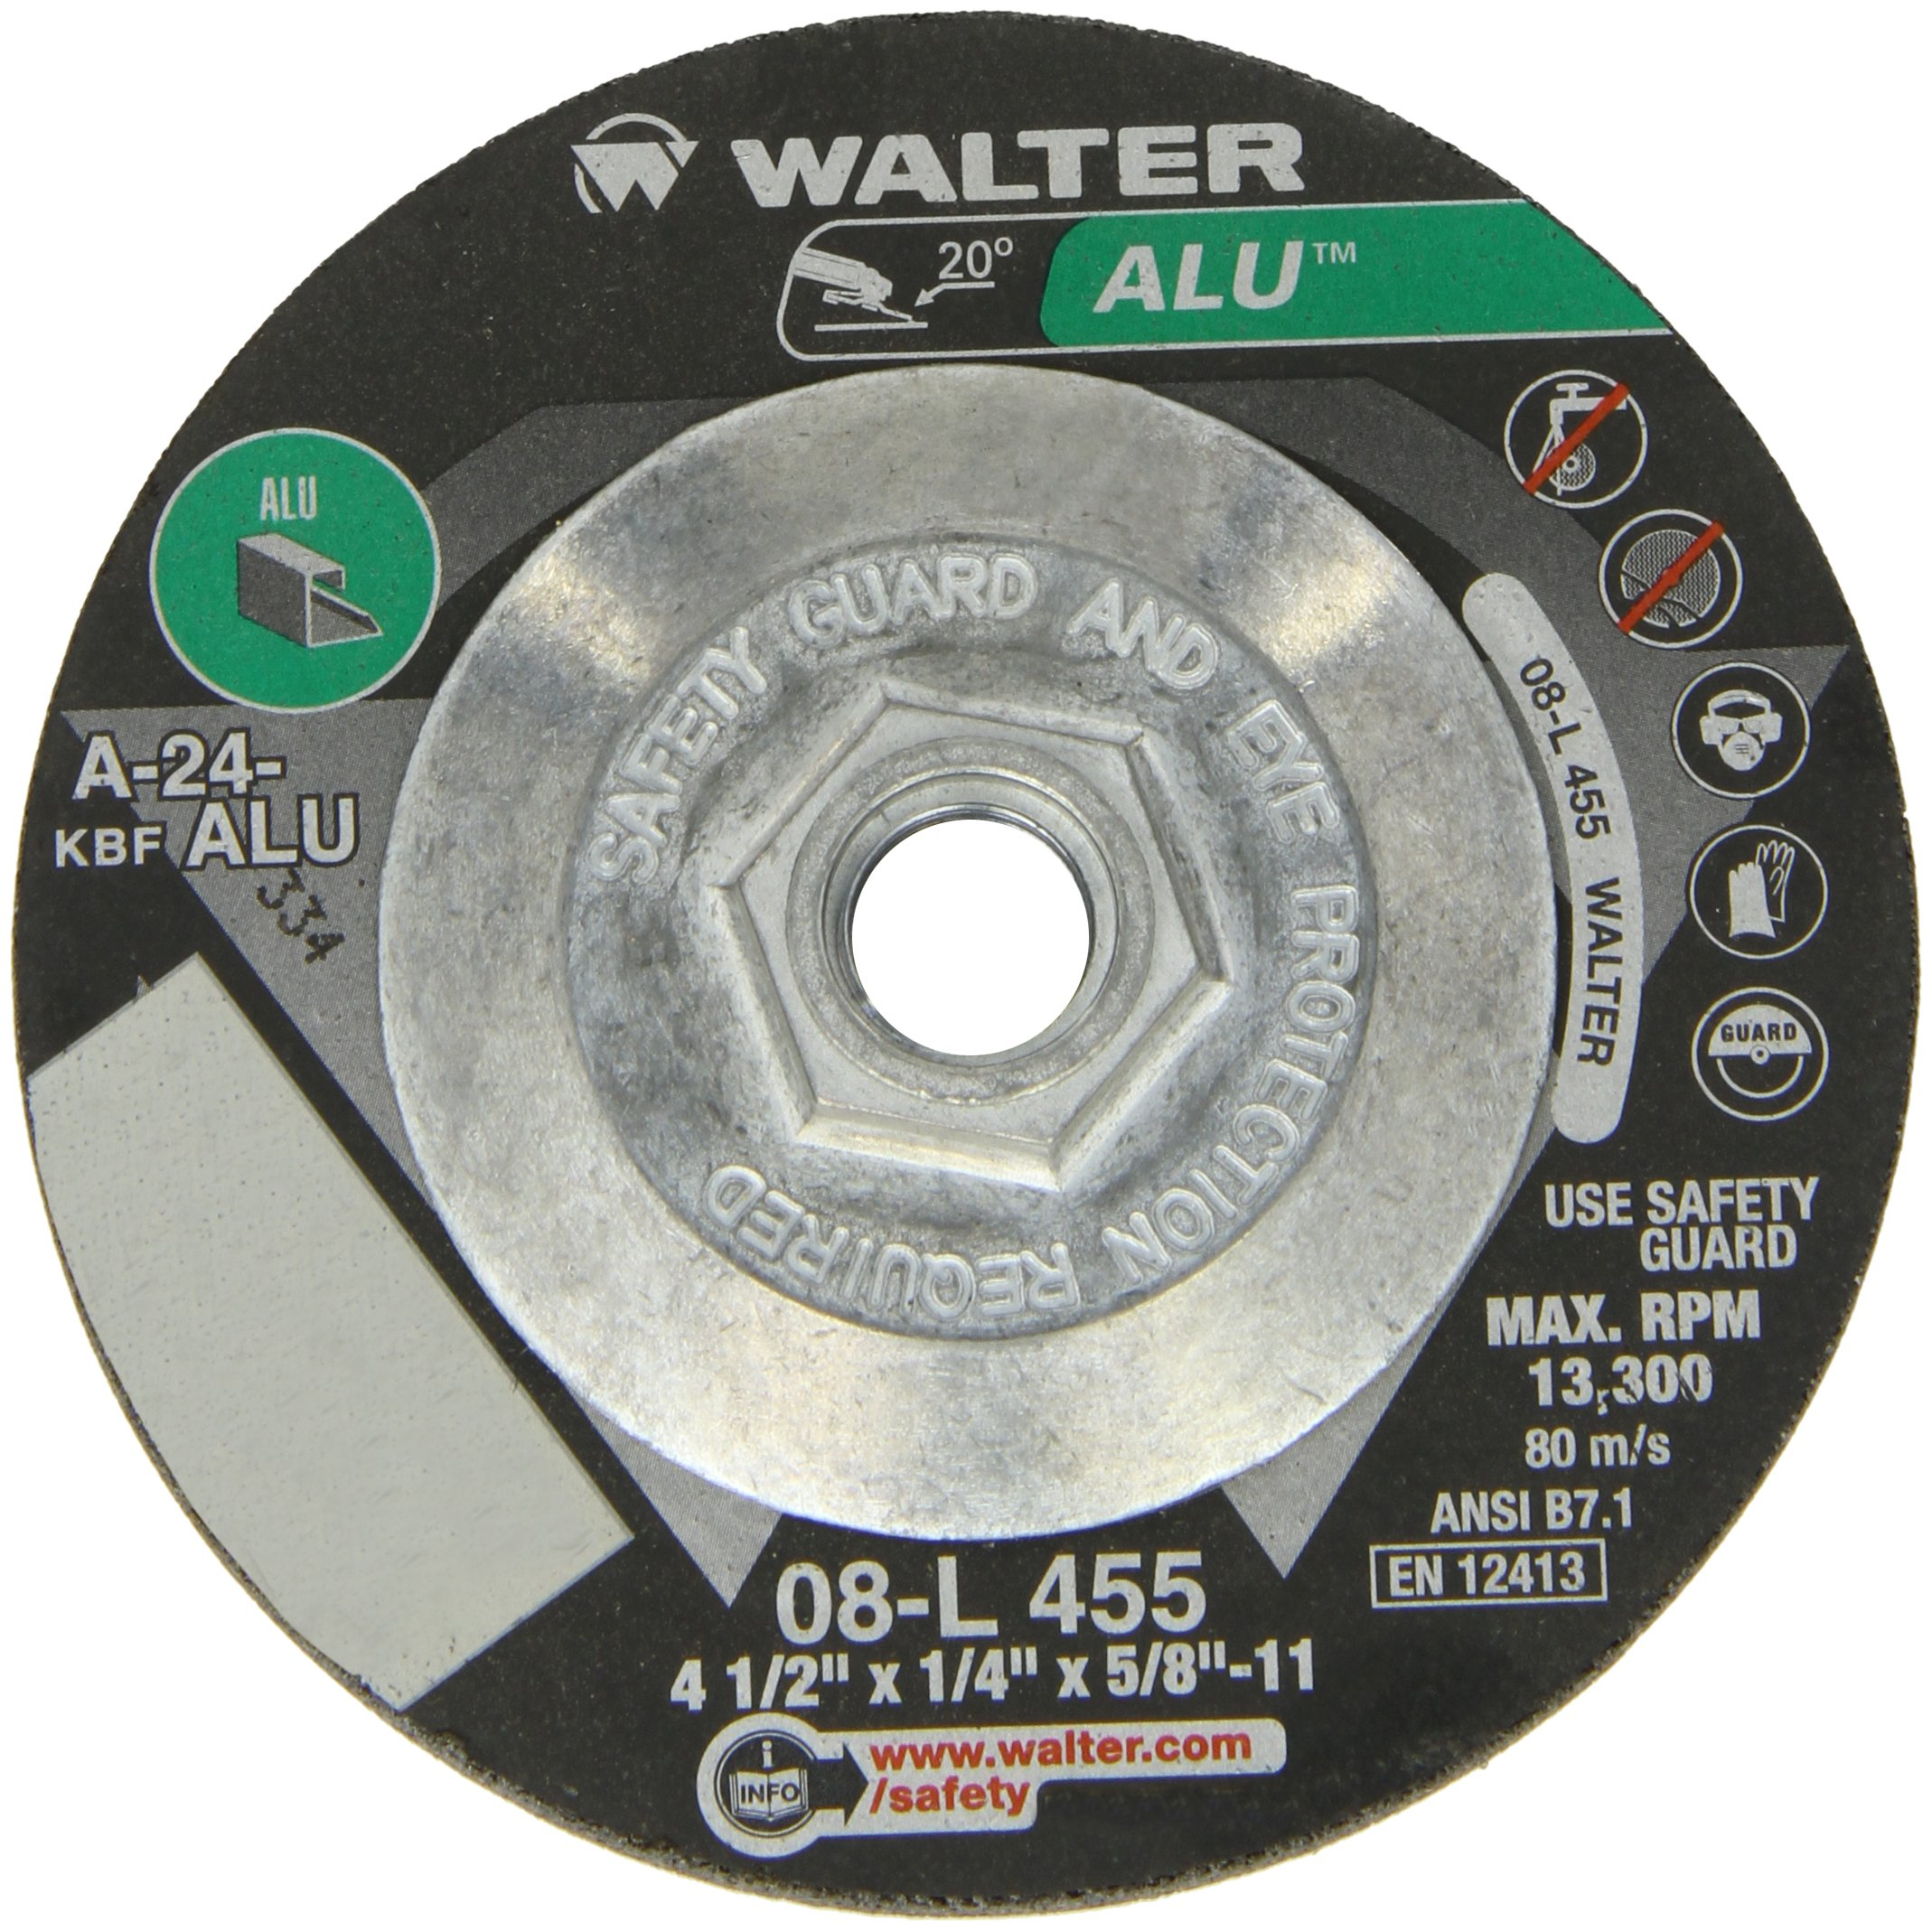 Walter Aluminum Performance Grinding and Cutting Wheel, Type 27, Threaded Hole, Aluminum Oxide, 4-1/2'' Diameter, 1/4'' Thick, 5/8''-11 Metal Arbor, Grit A-24-ALU (Pack of 10)